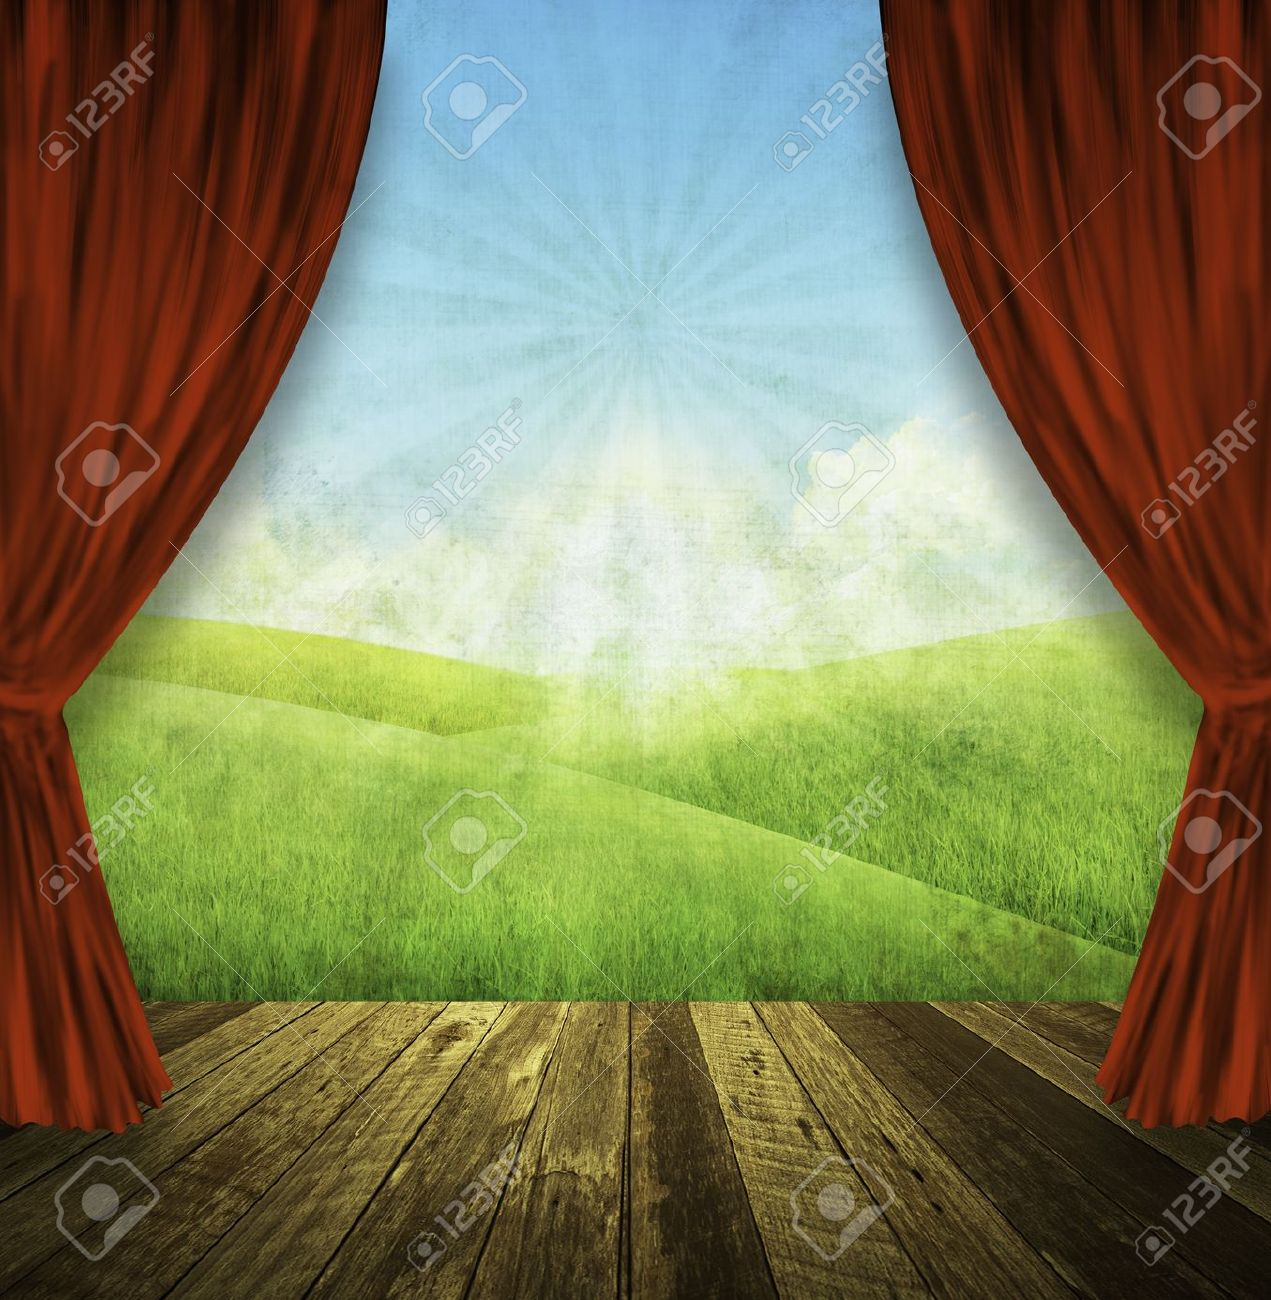 Green Stage Curtains - Theater stage with red curtains and spring summer background stock photo 12812750